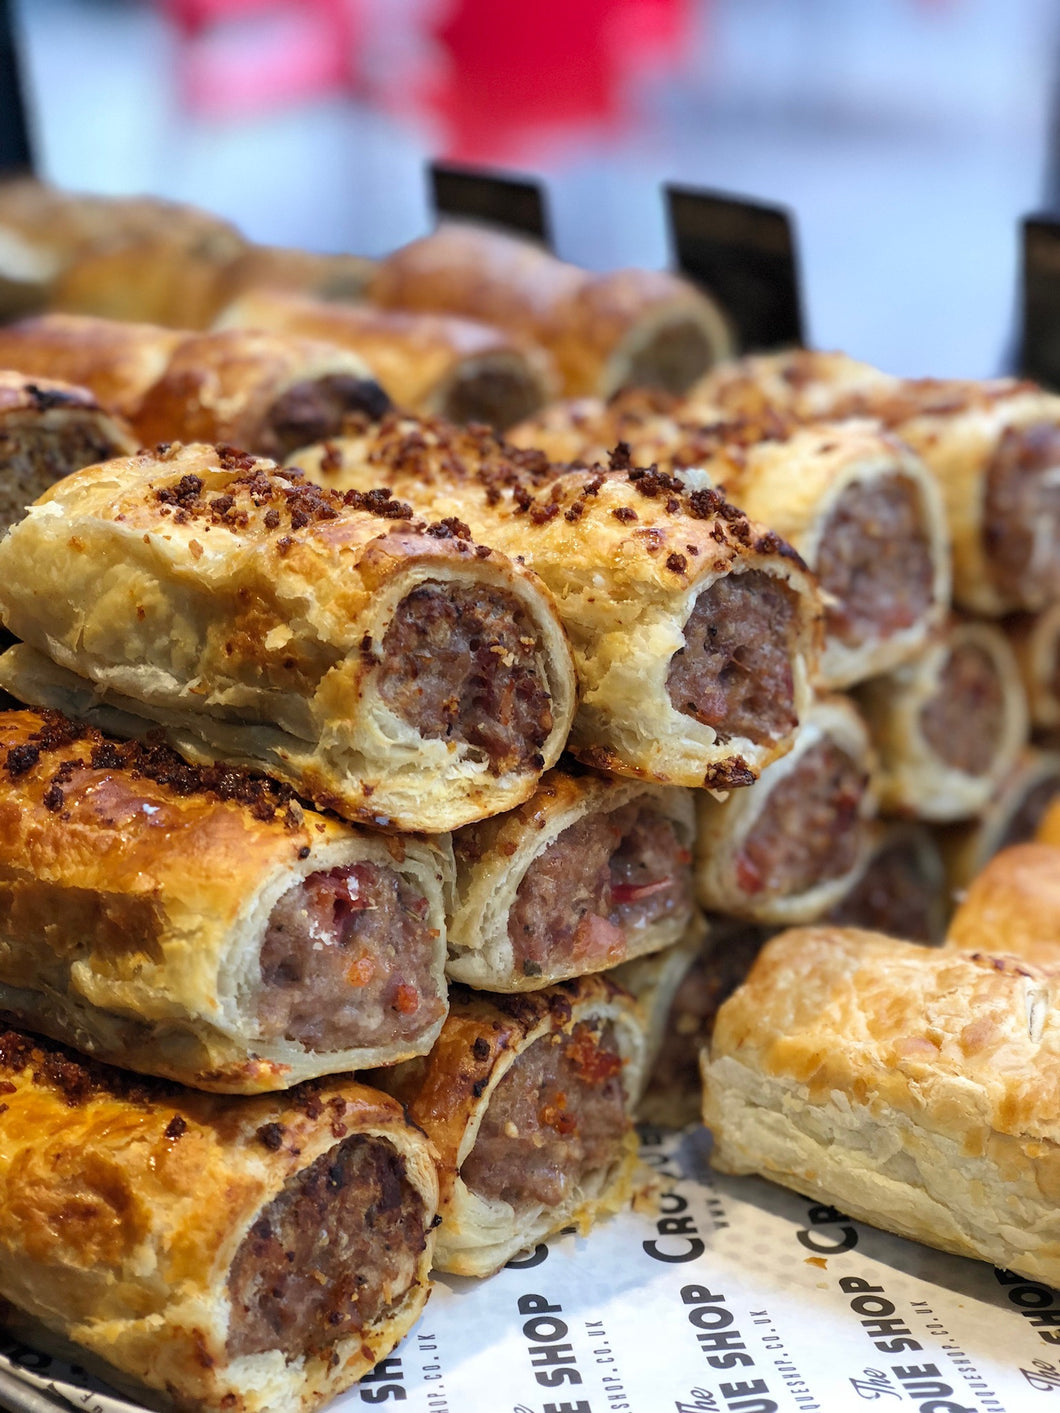 Our favorites - Box of 12 sausage rolls